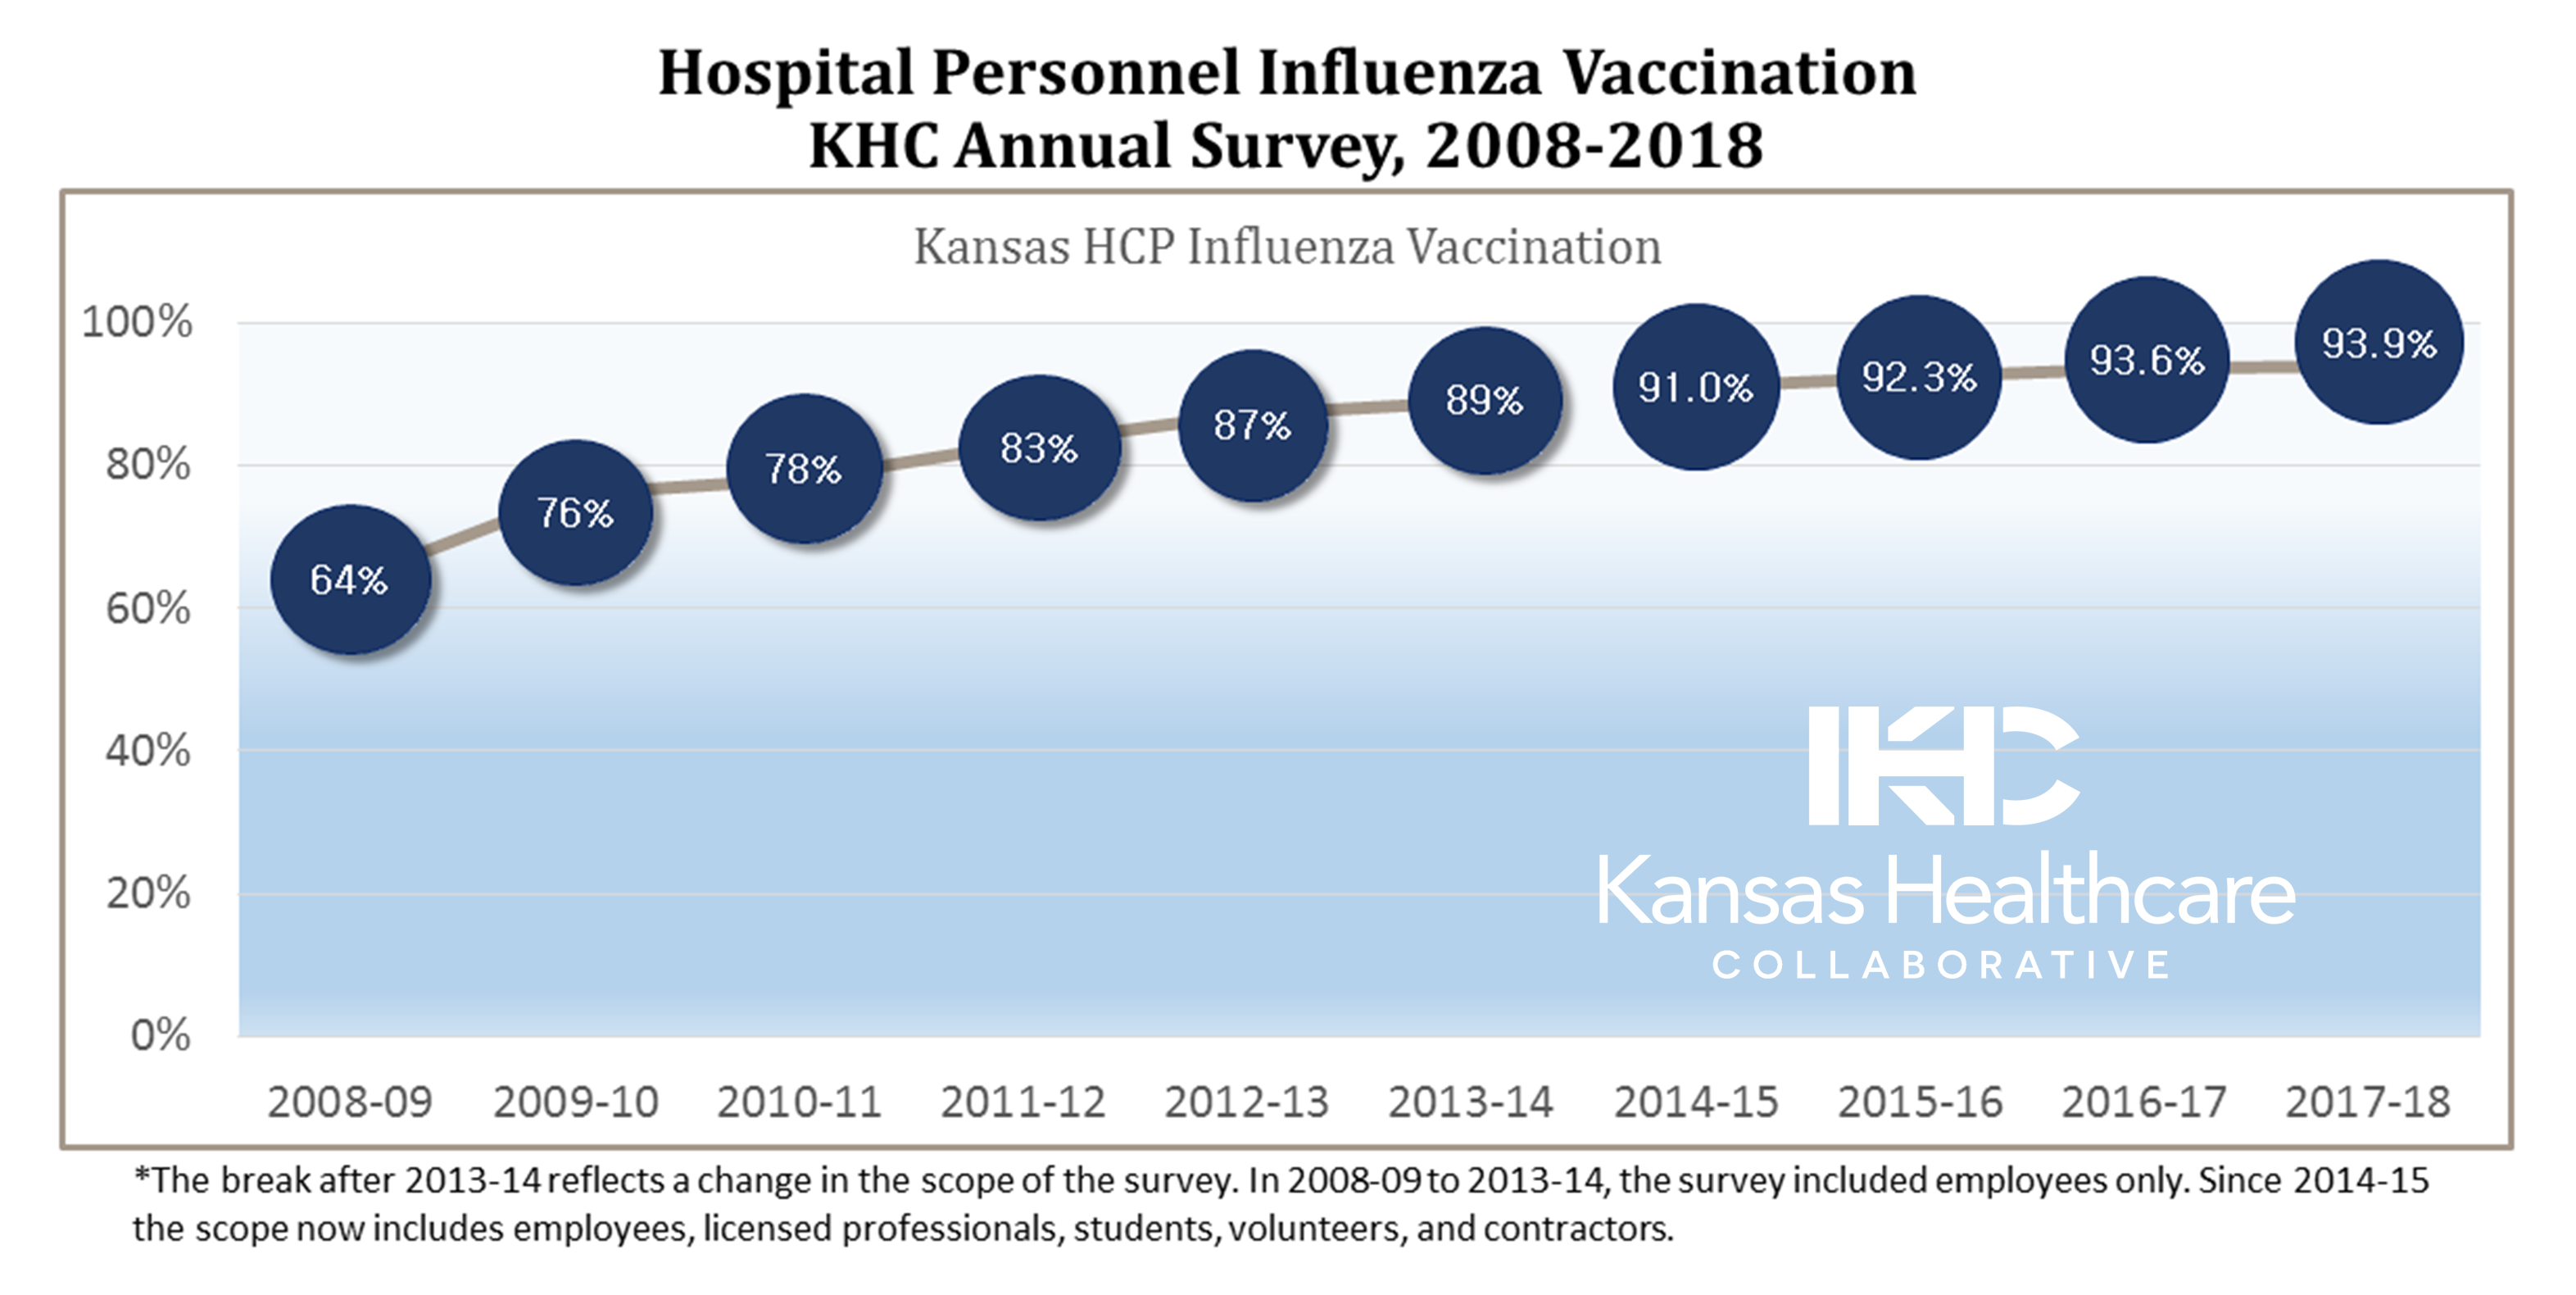 Hospital personnel flu vaccination rates